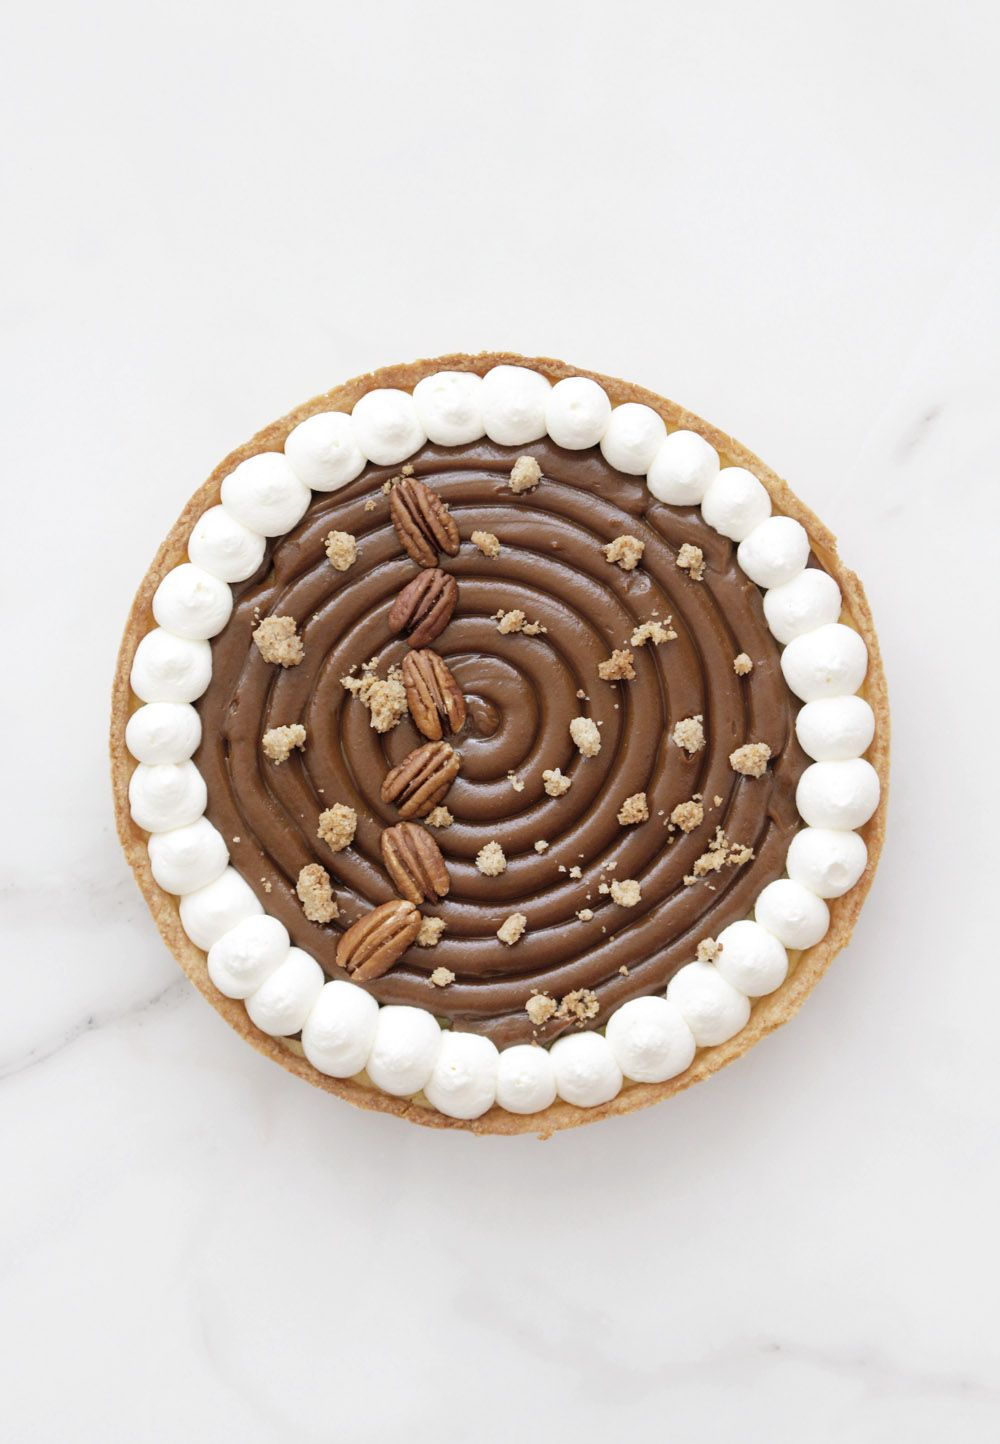 Cream Cheese Tart with Dulce de Leche